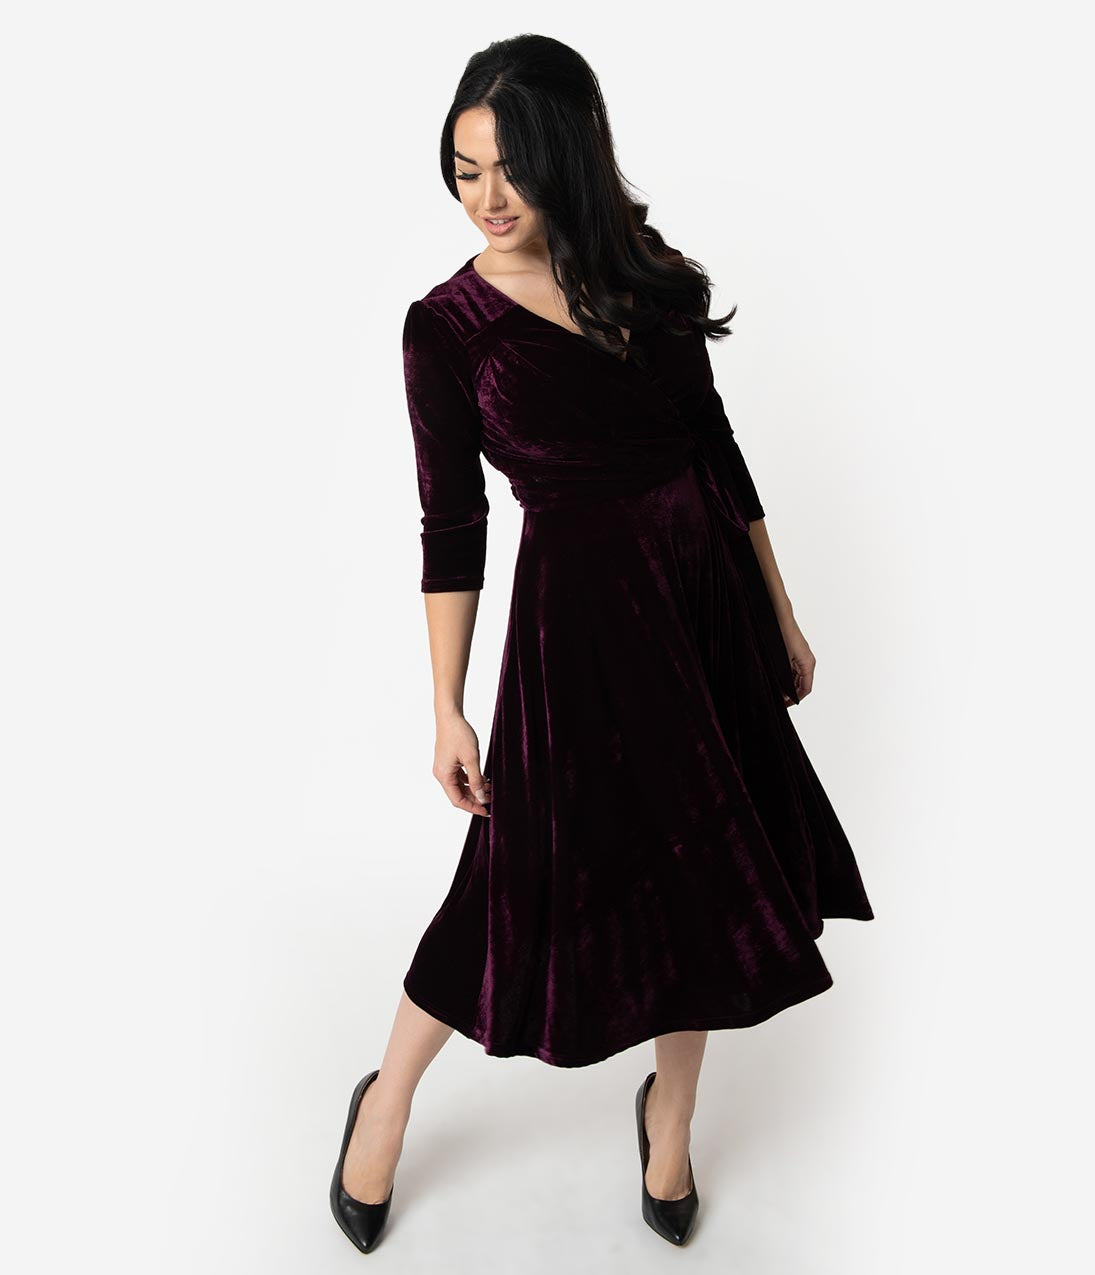 1940s Cocktail Dresses, Party Dresses Unique Vintage 1940S Style Eggplant Purple Velvet Kelsie Wrap Dress $98.00 AT vintagedancer.com